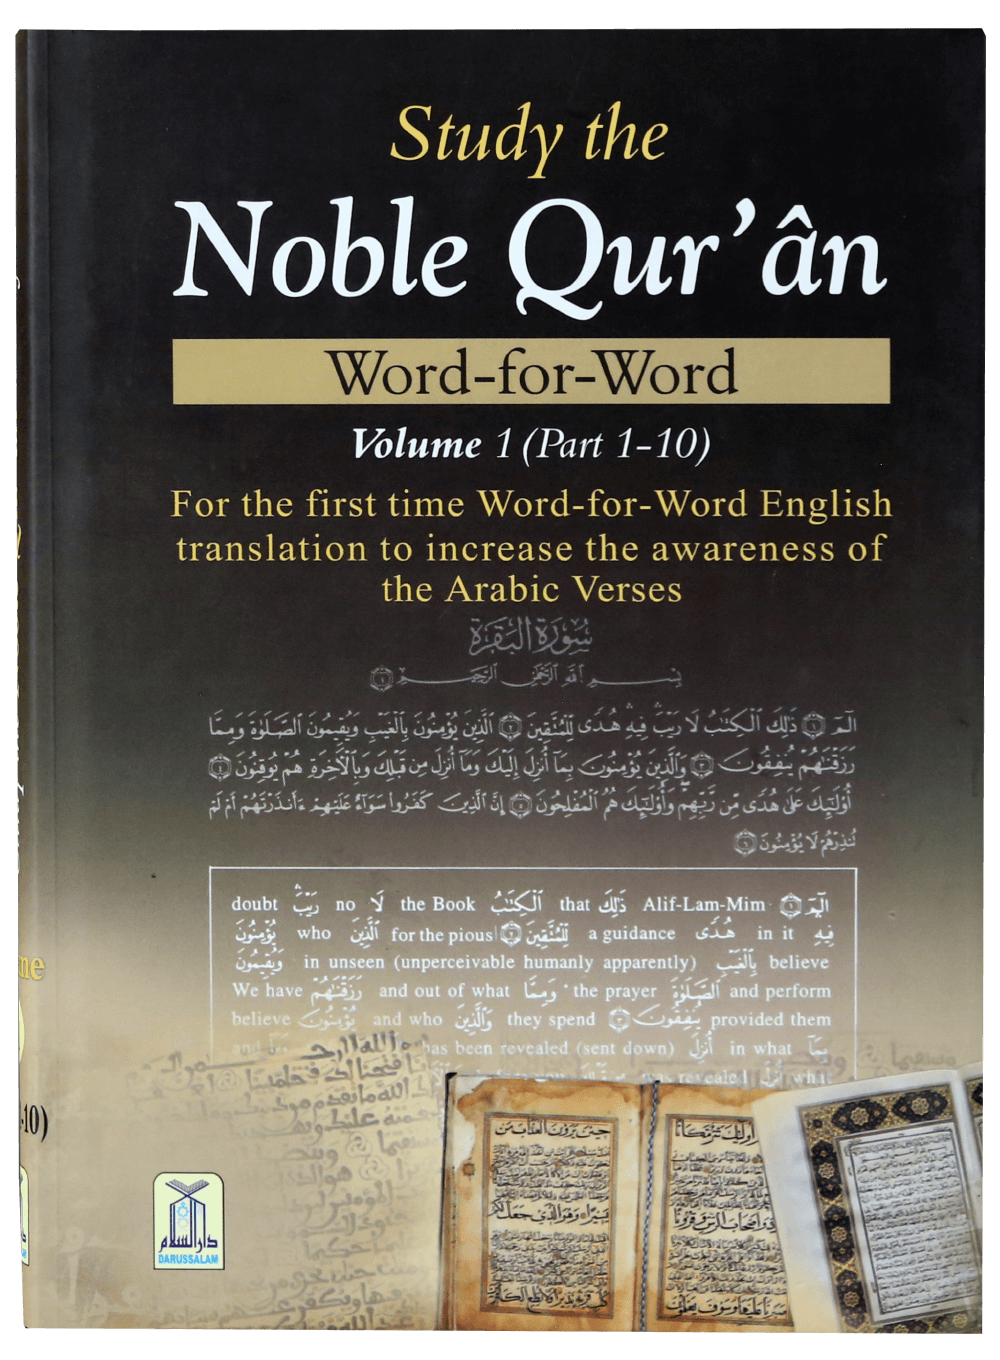 PDF Explanation of Quran Words - Volume 1